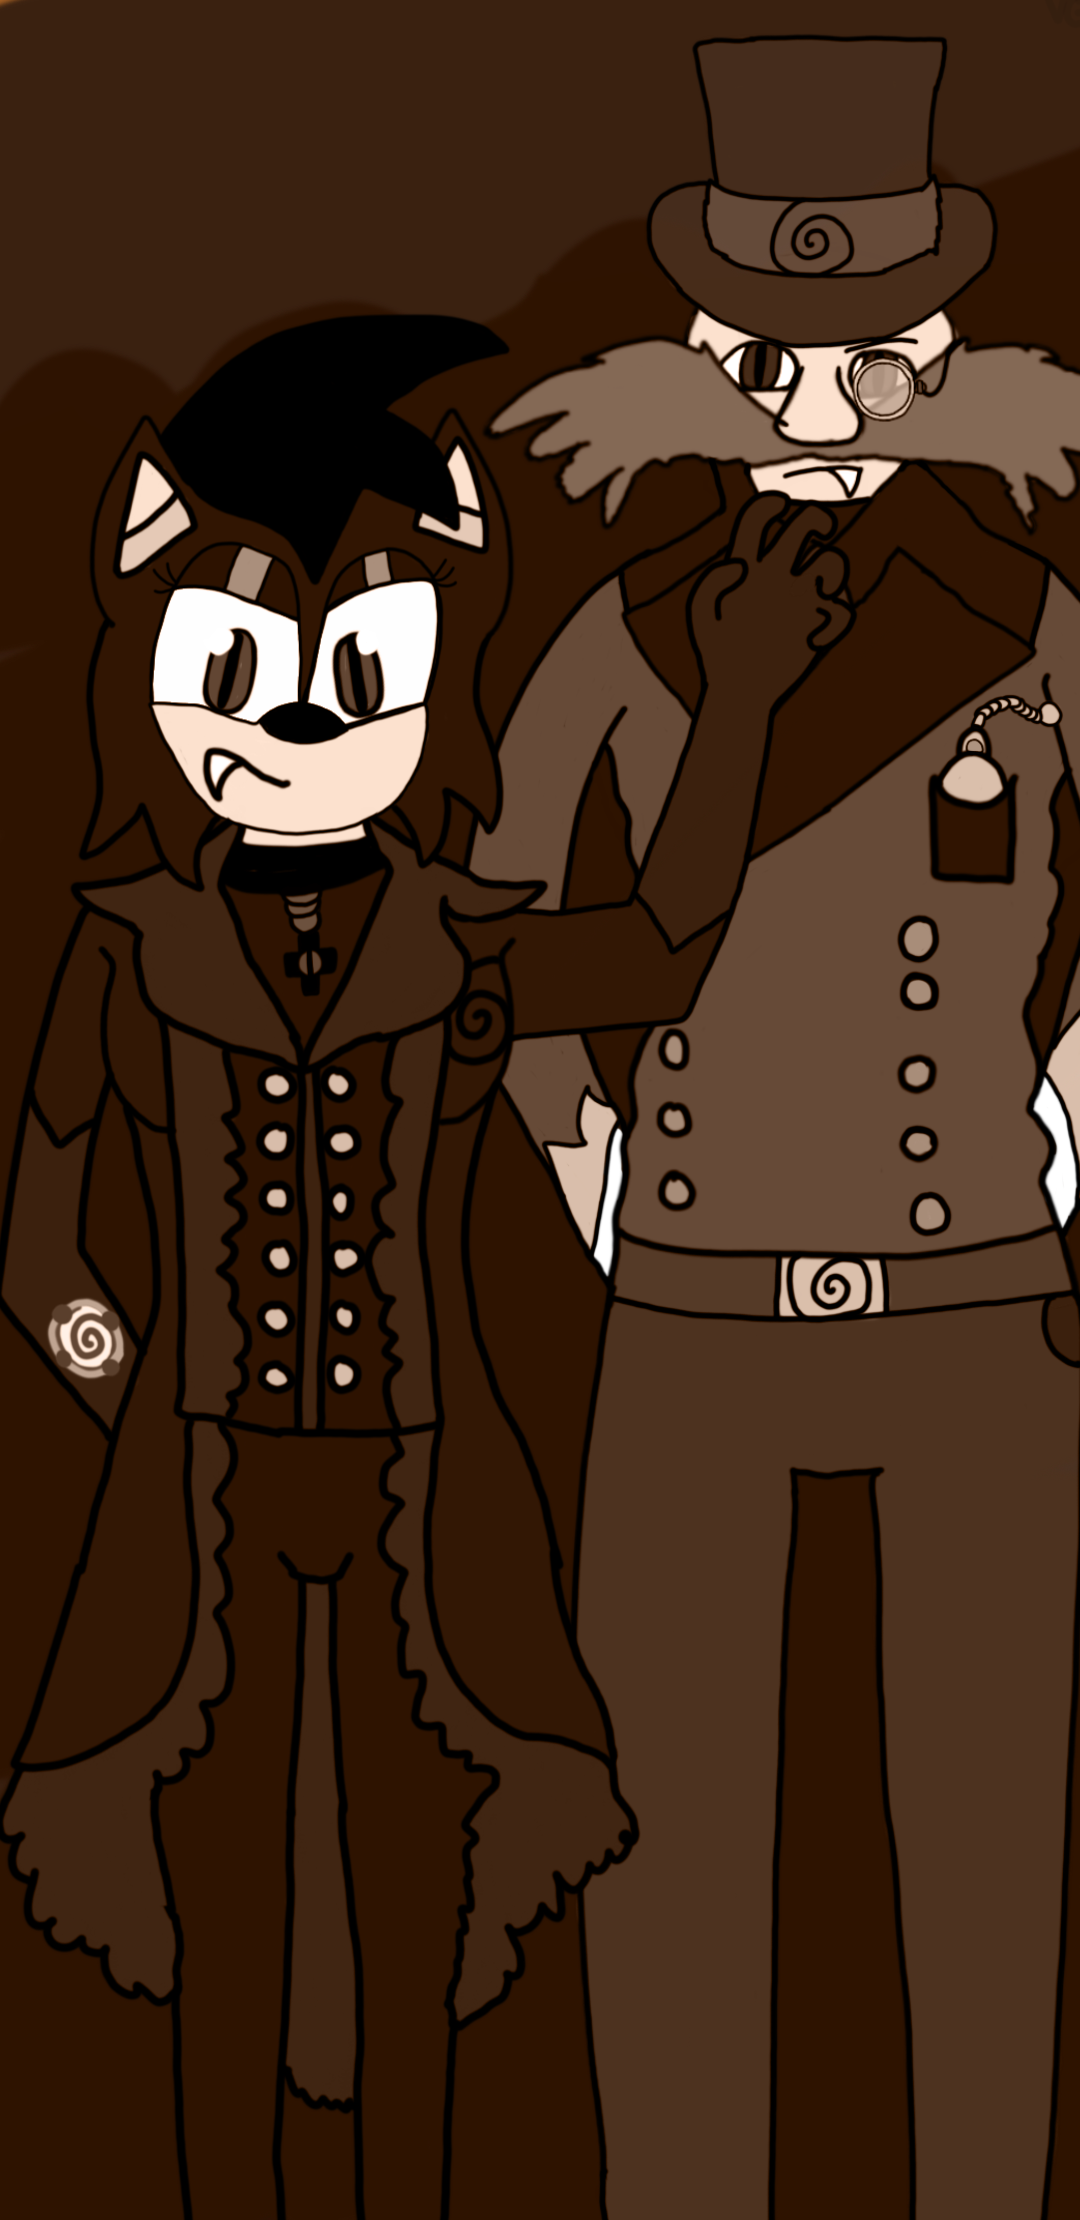 A vampire and her husband's old timey portrait